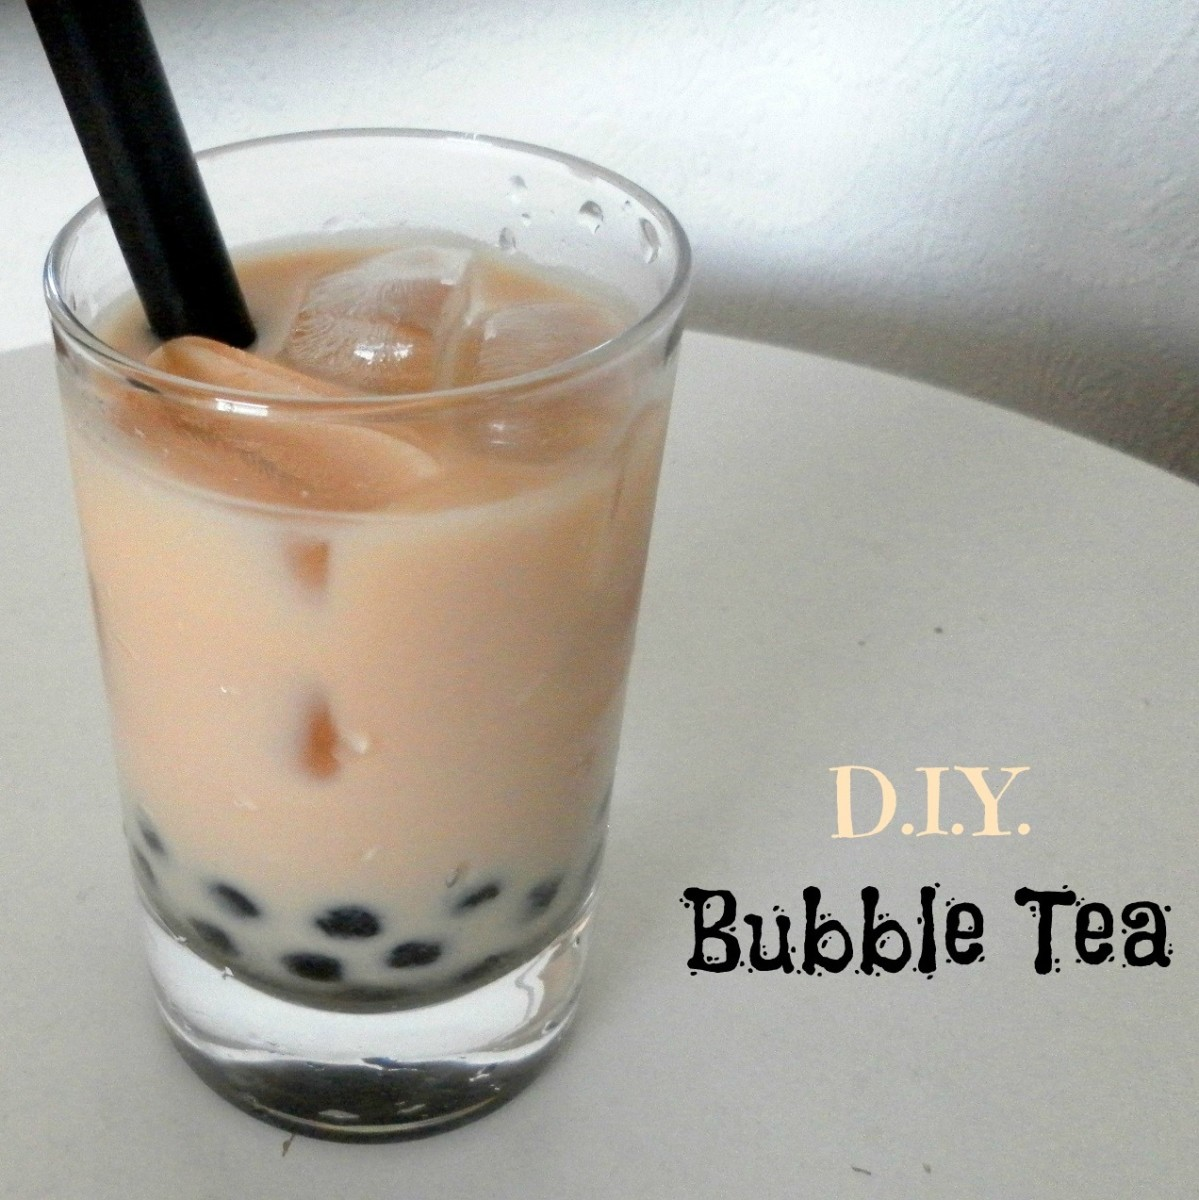 How to Make DIY Bubble Tea (Boba Tea)